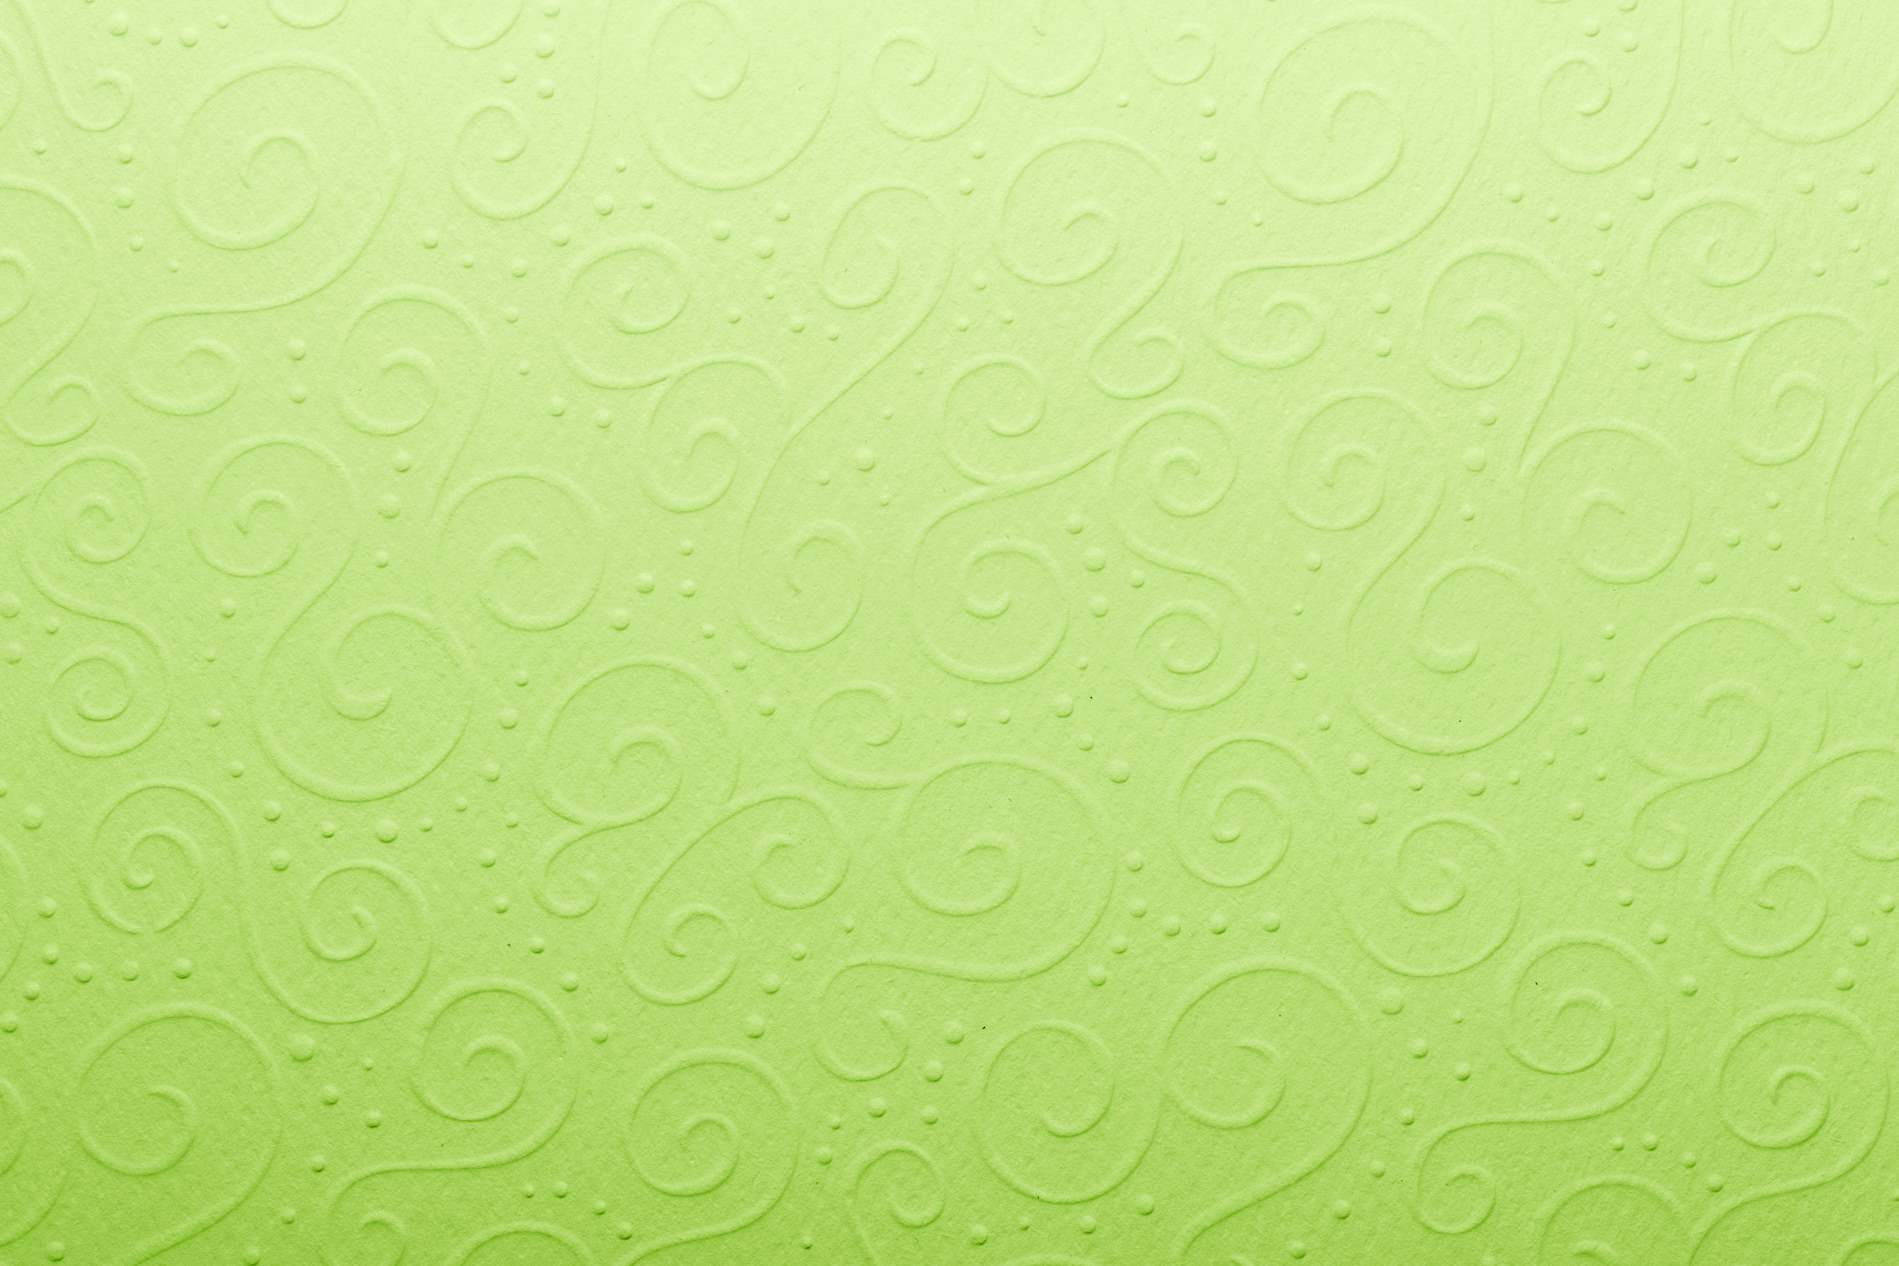 green vintage paper texture with twirl embossed design photohdx